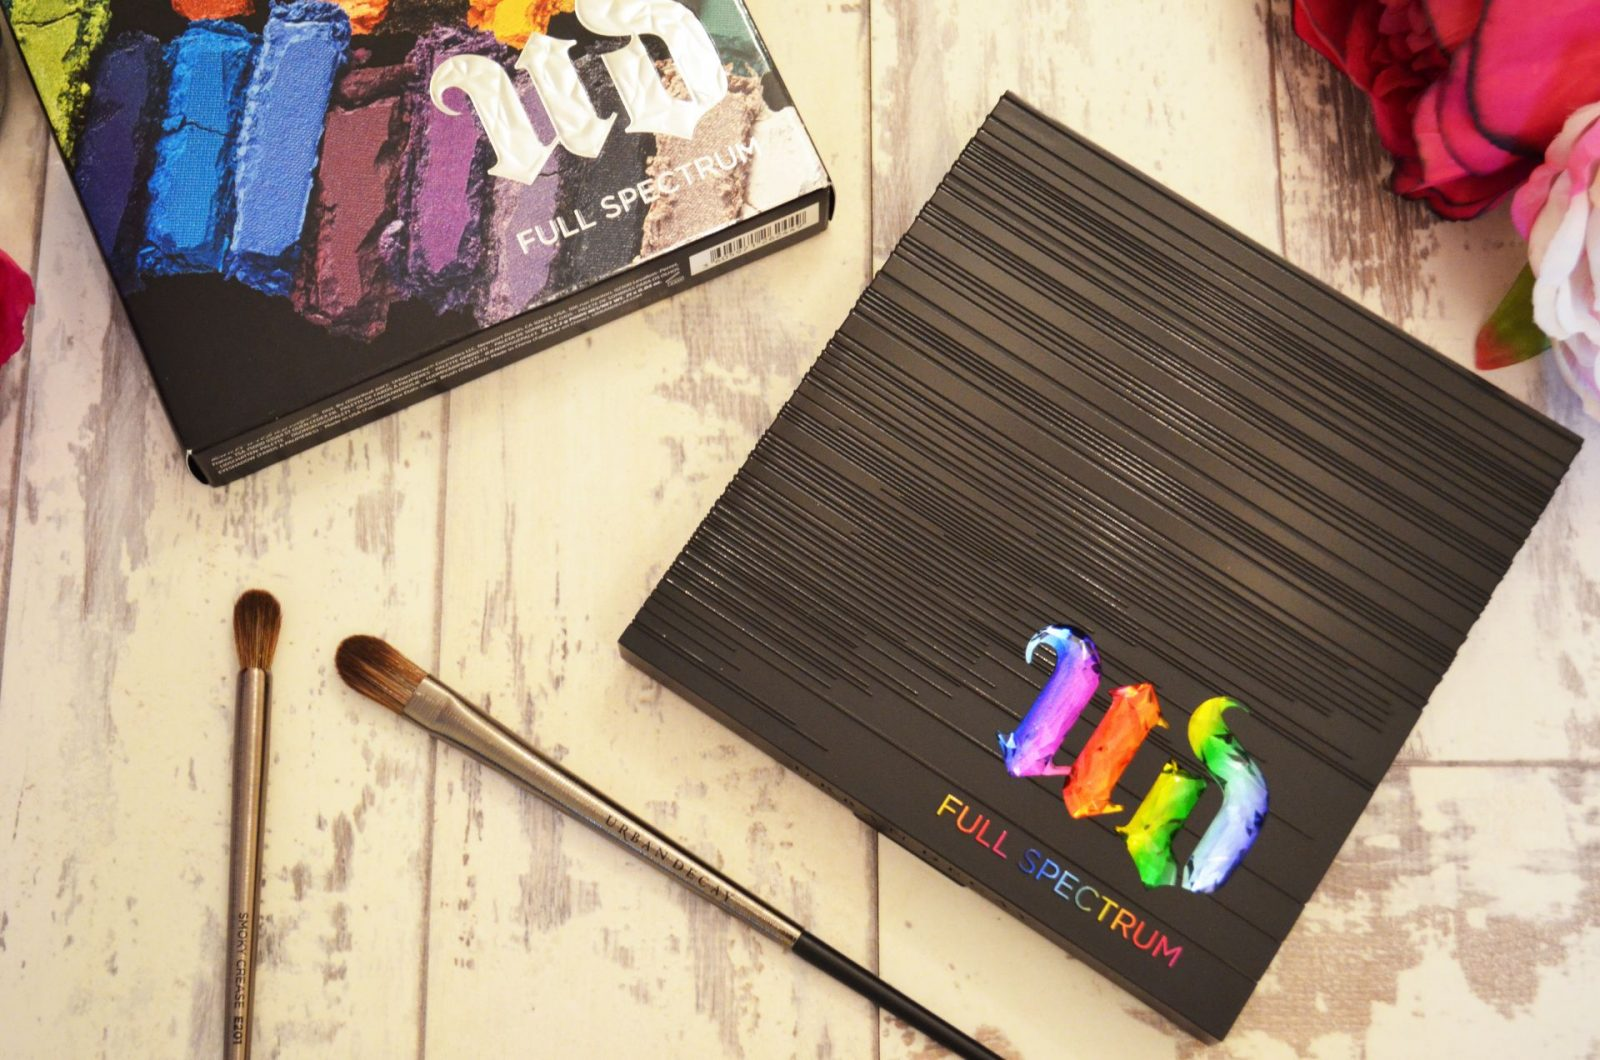 urban-decay-full-spectrum-eyeshadow-palette